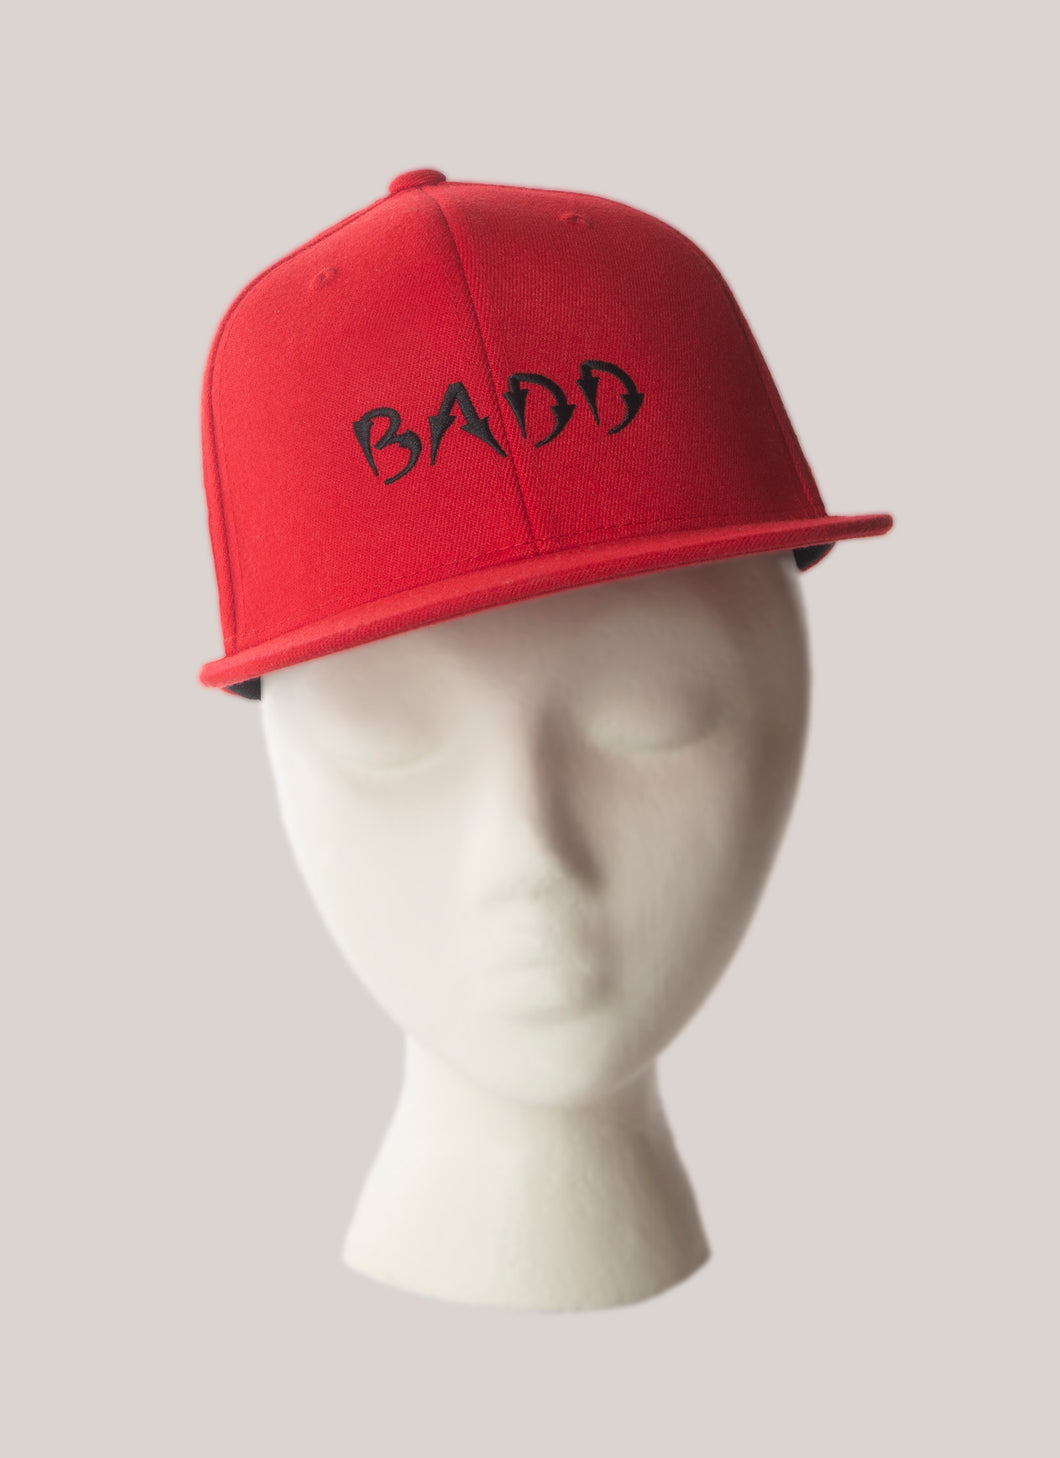 BADD Snapback Hat Red-Black Logo